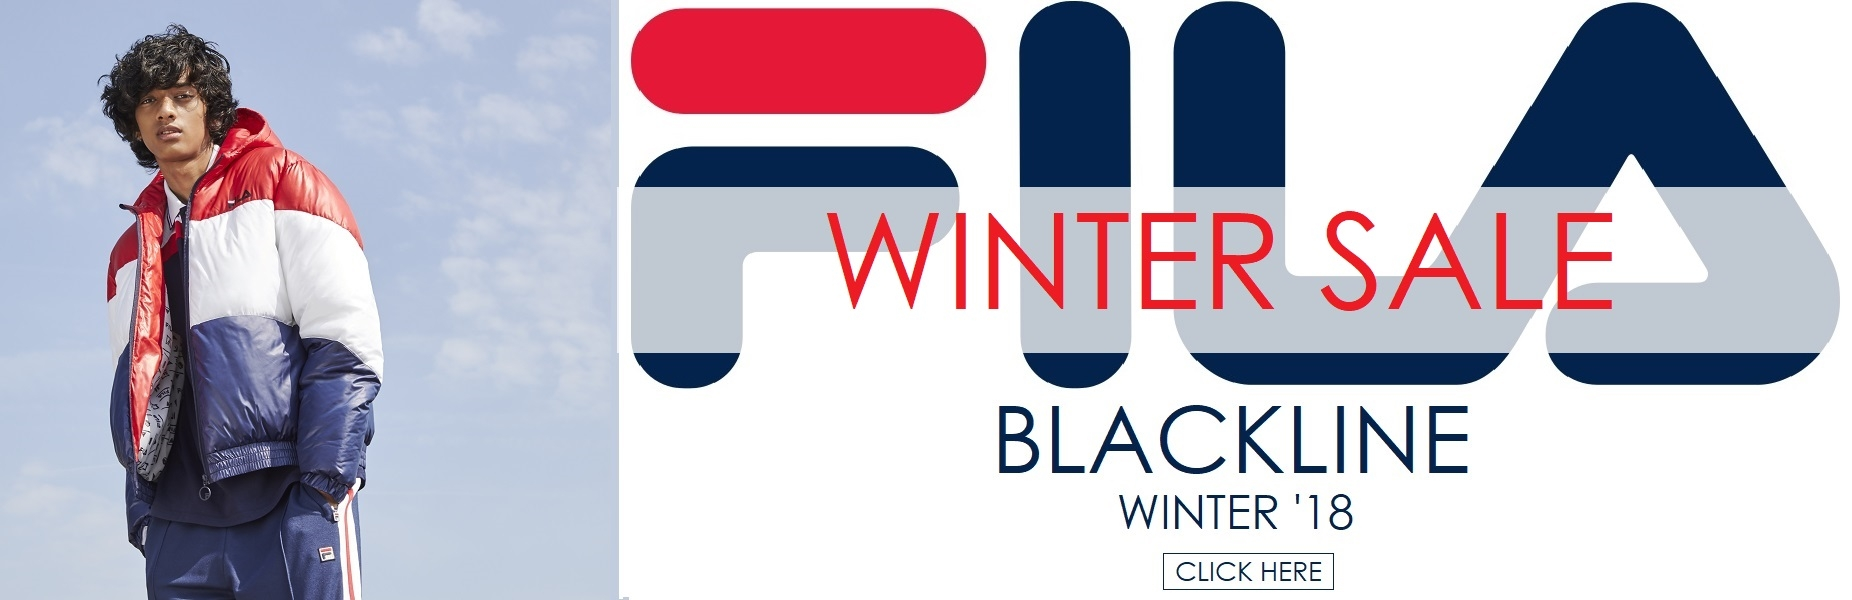 fila _blackline_winter_2018_SALE